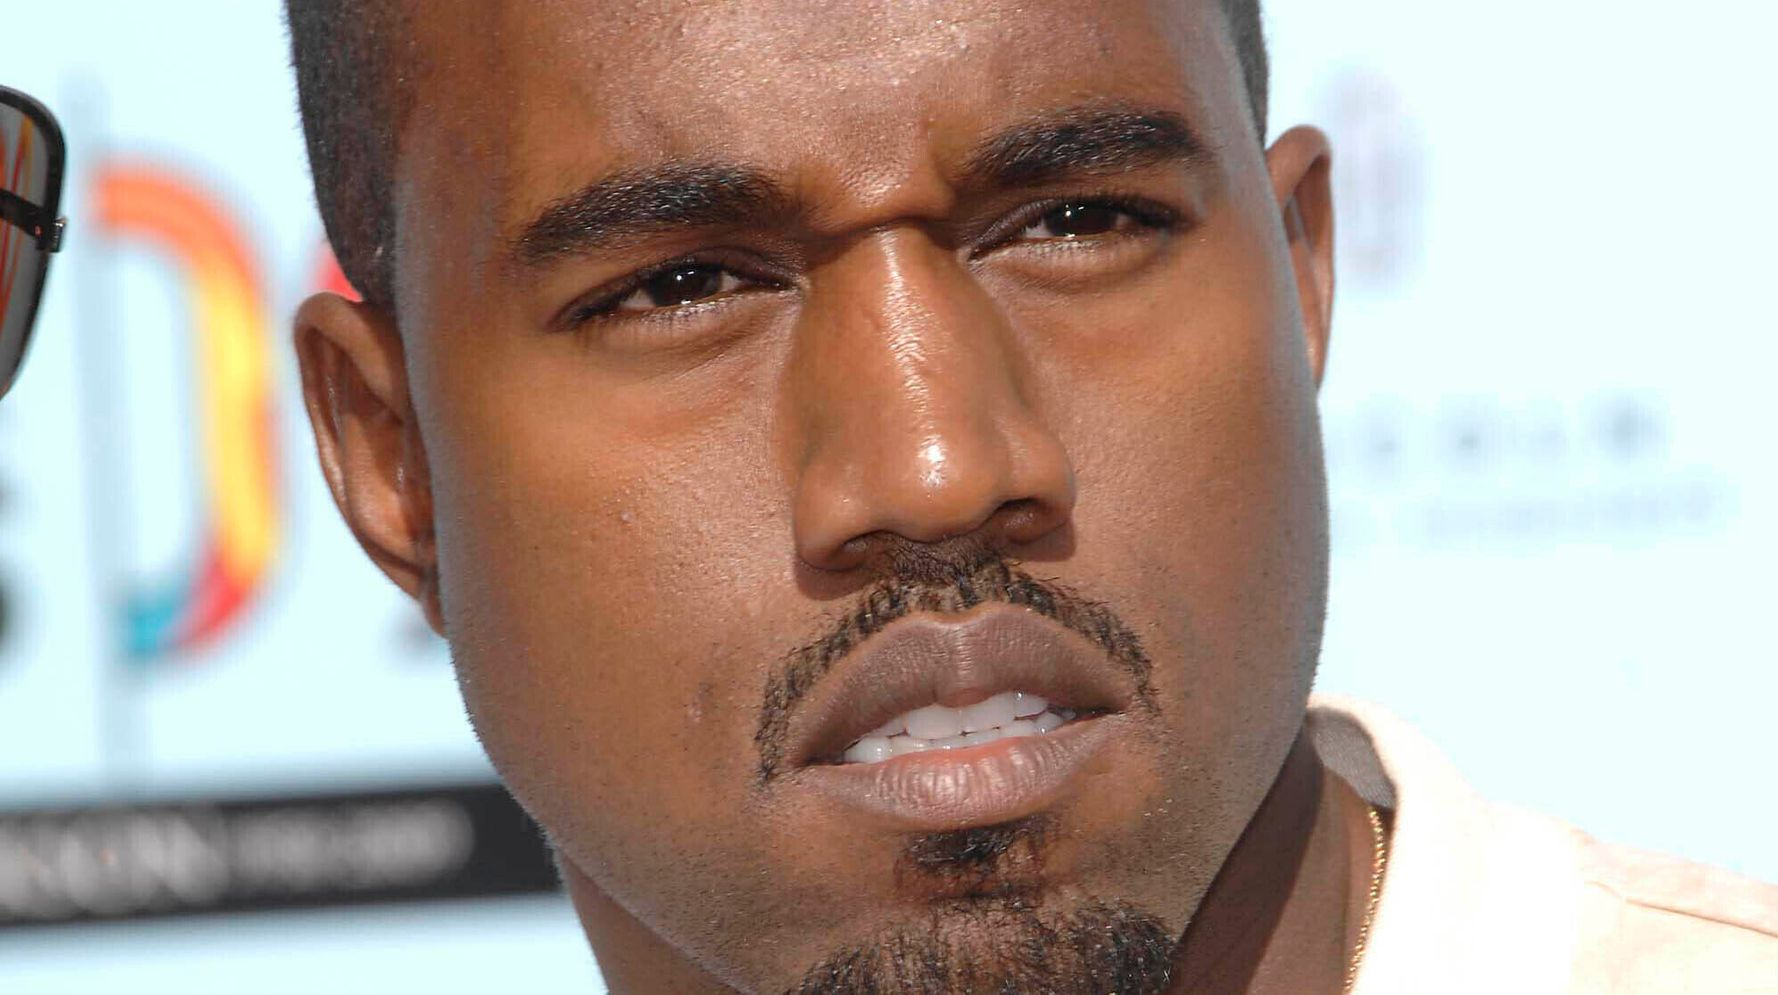 Kanye Brags His First Vote Ever Will Be For Himself And Annoys Twitter Users